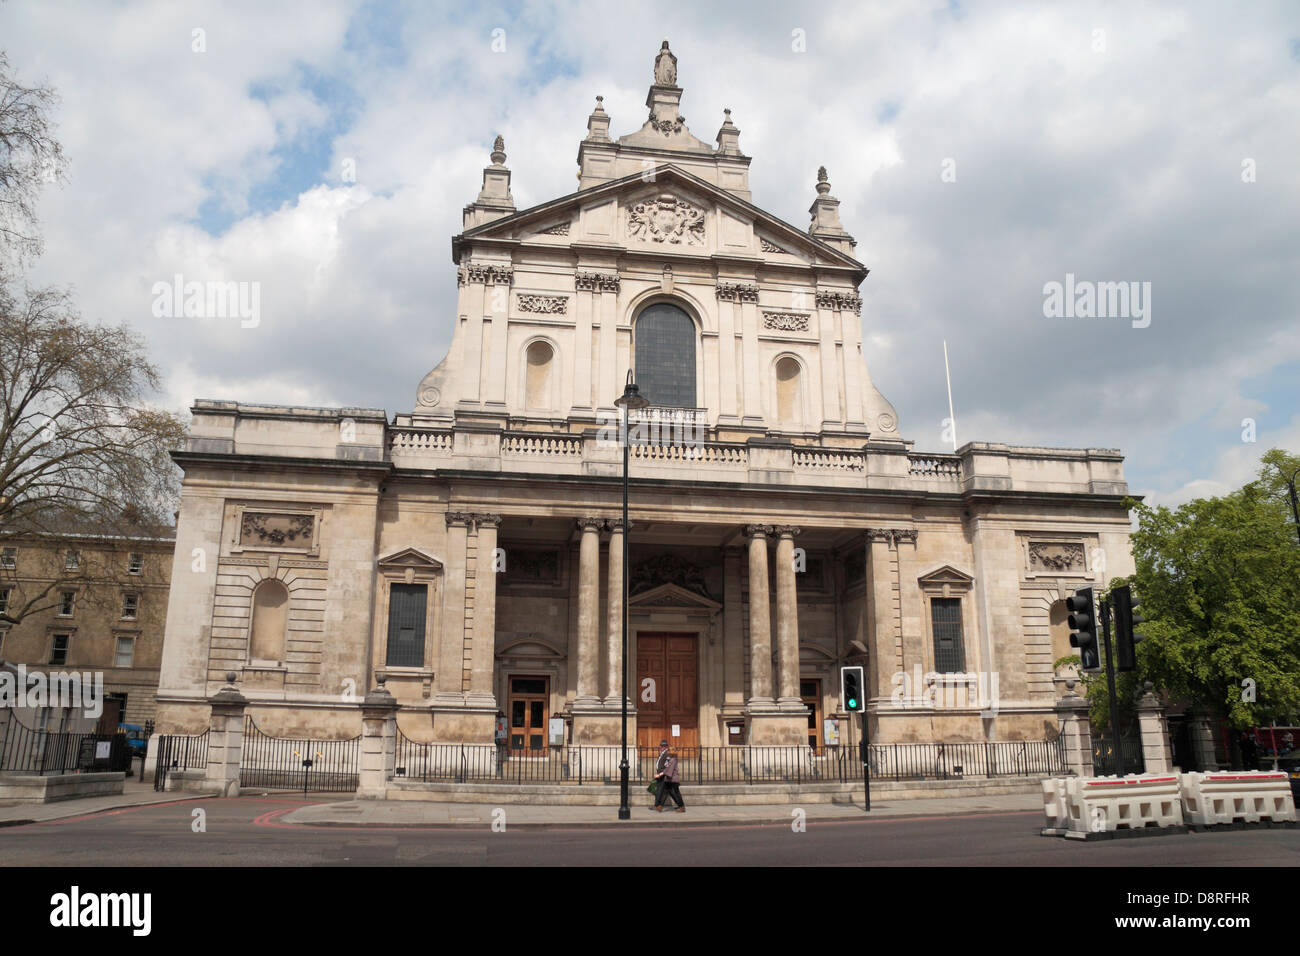 The Roman Catholic Church of the Immaculate Heart of Mary, popularly known as Brompton Oratory, Brompton Rd, London - Stock Image